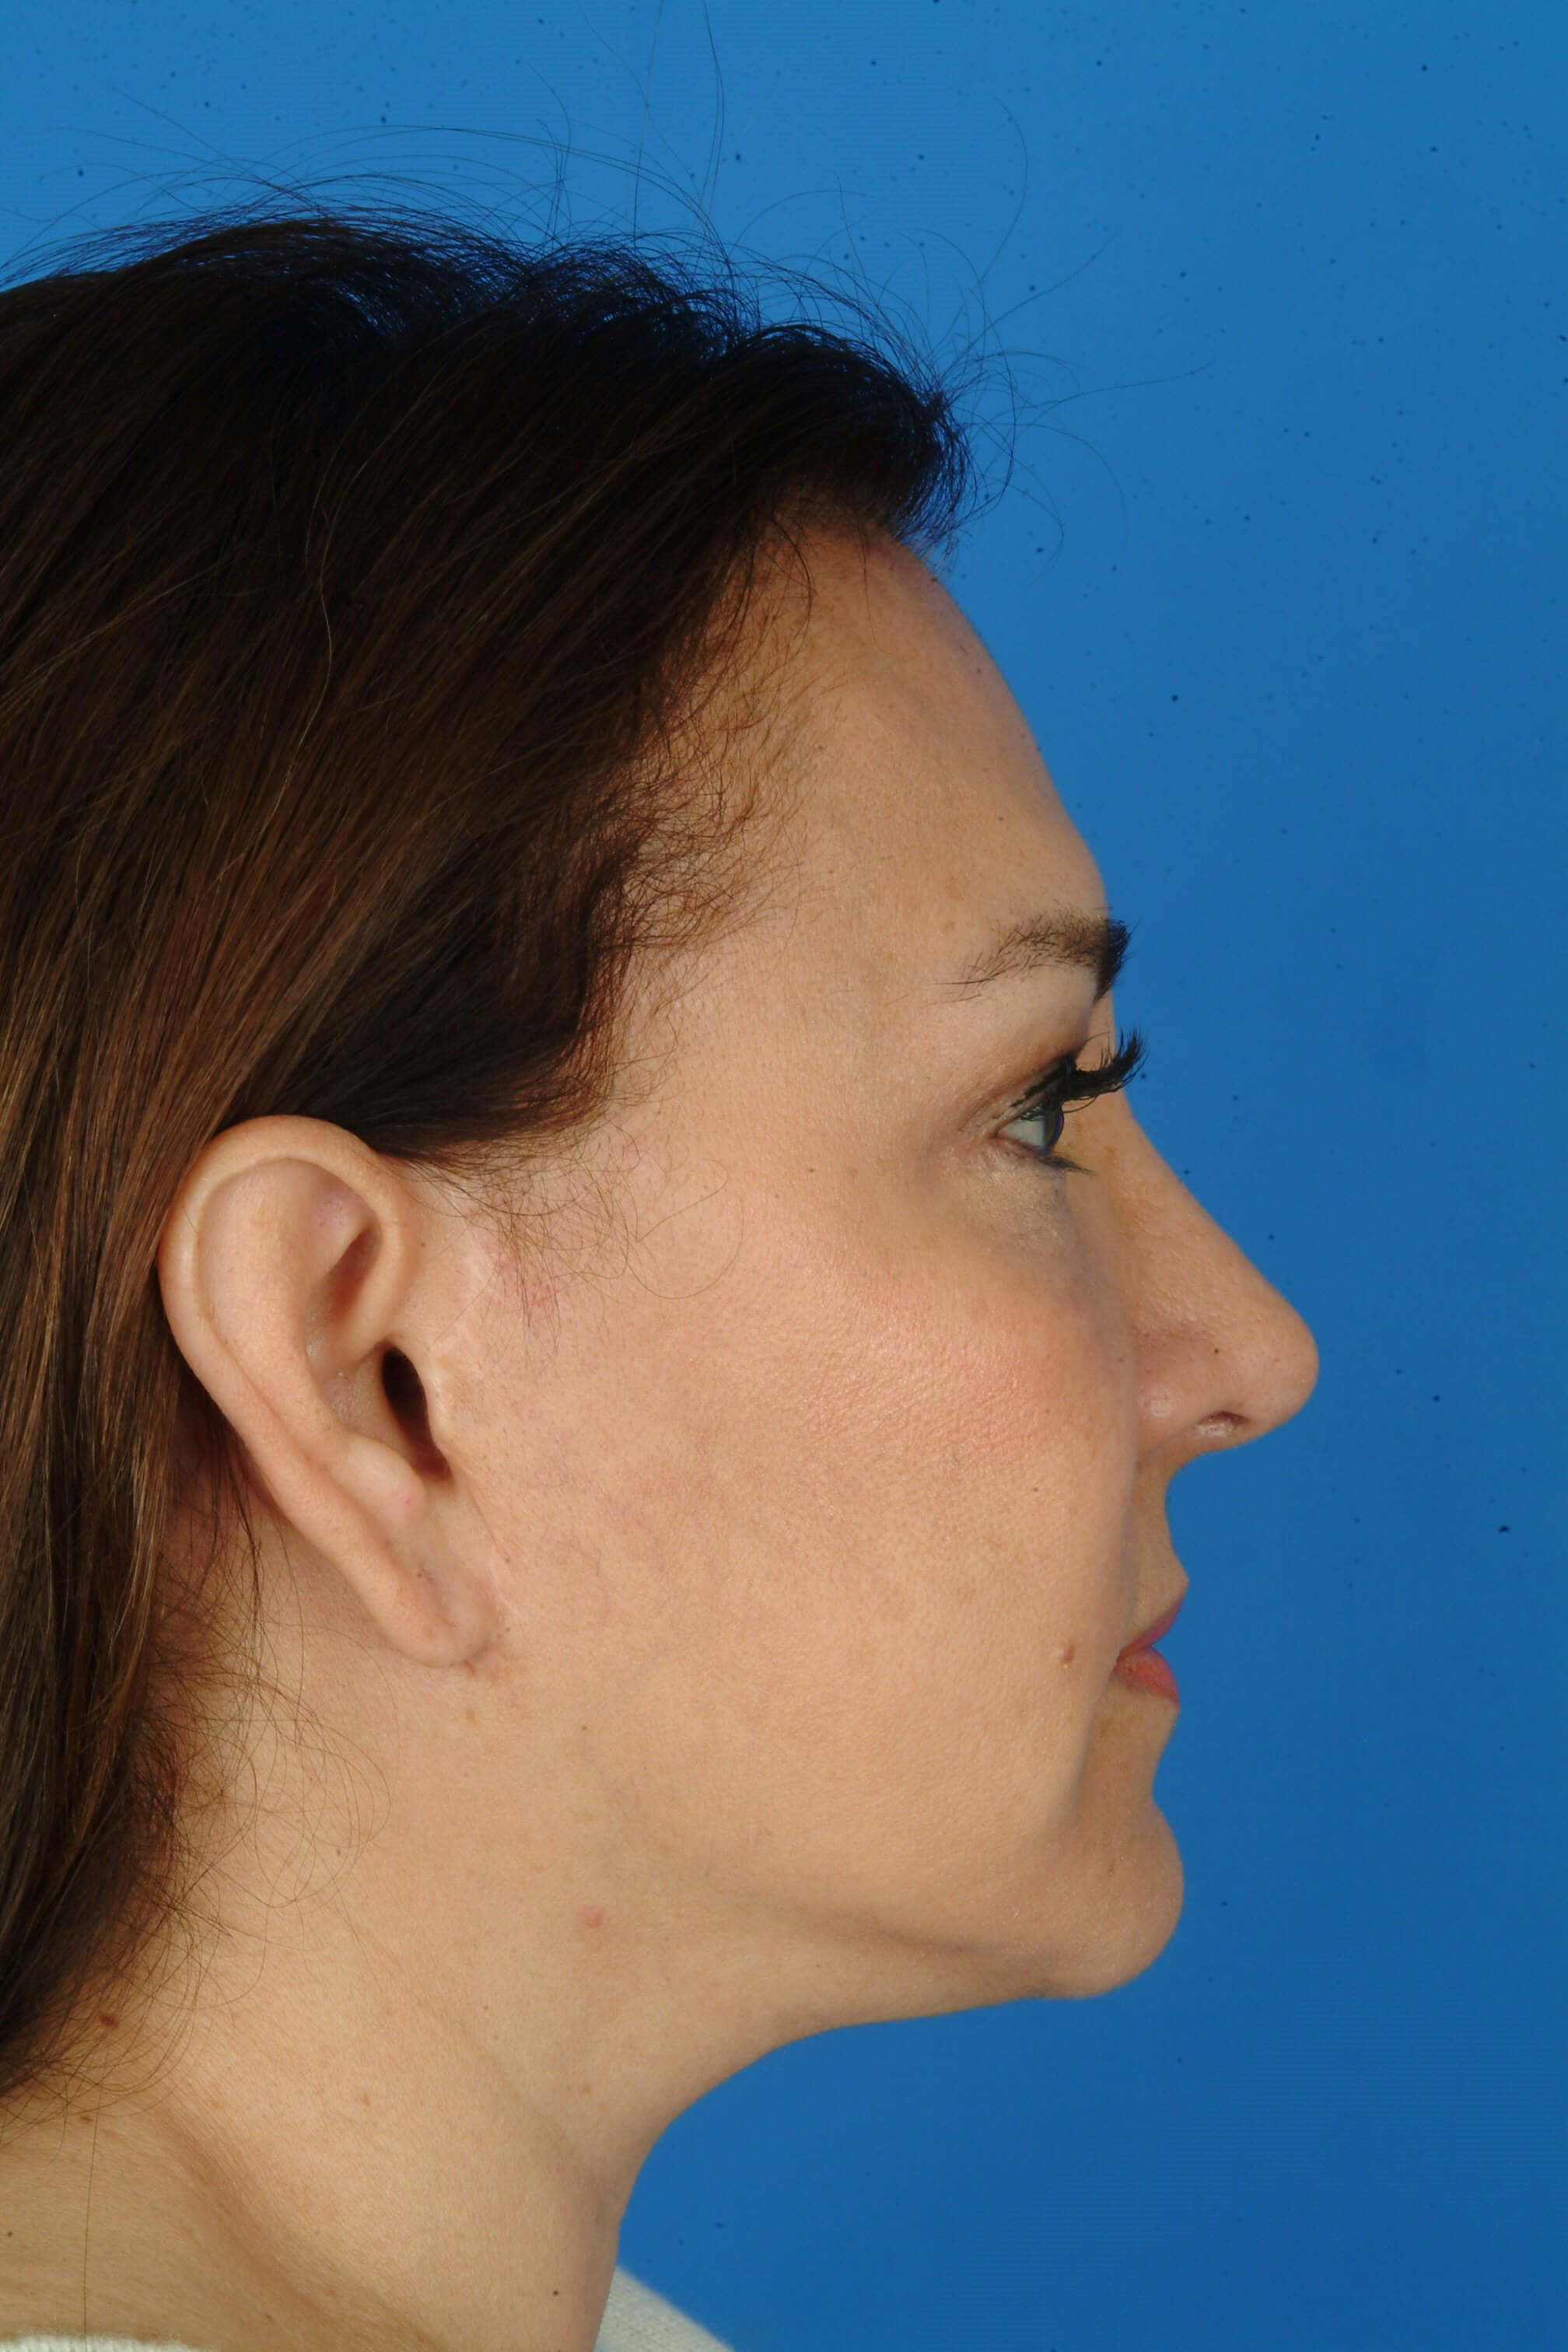 Profile View Seven Years Post-Operatively